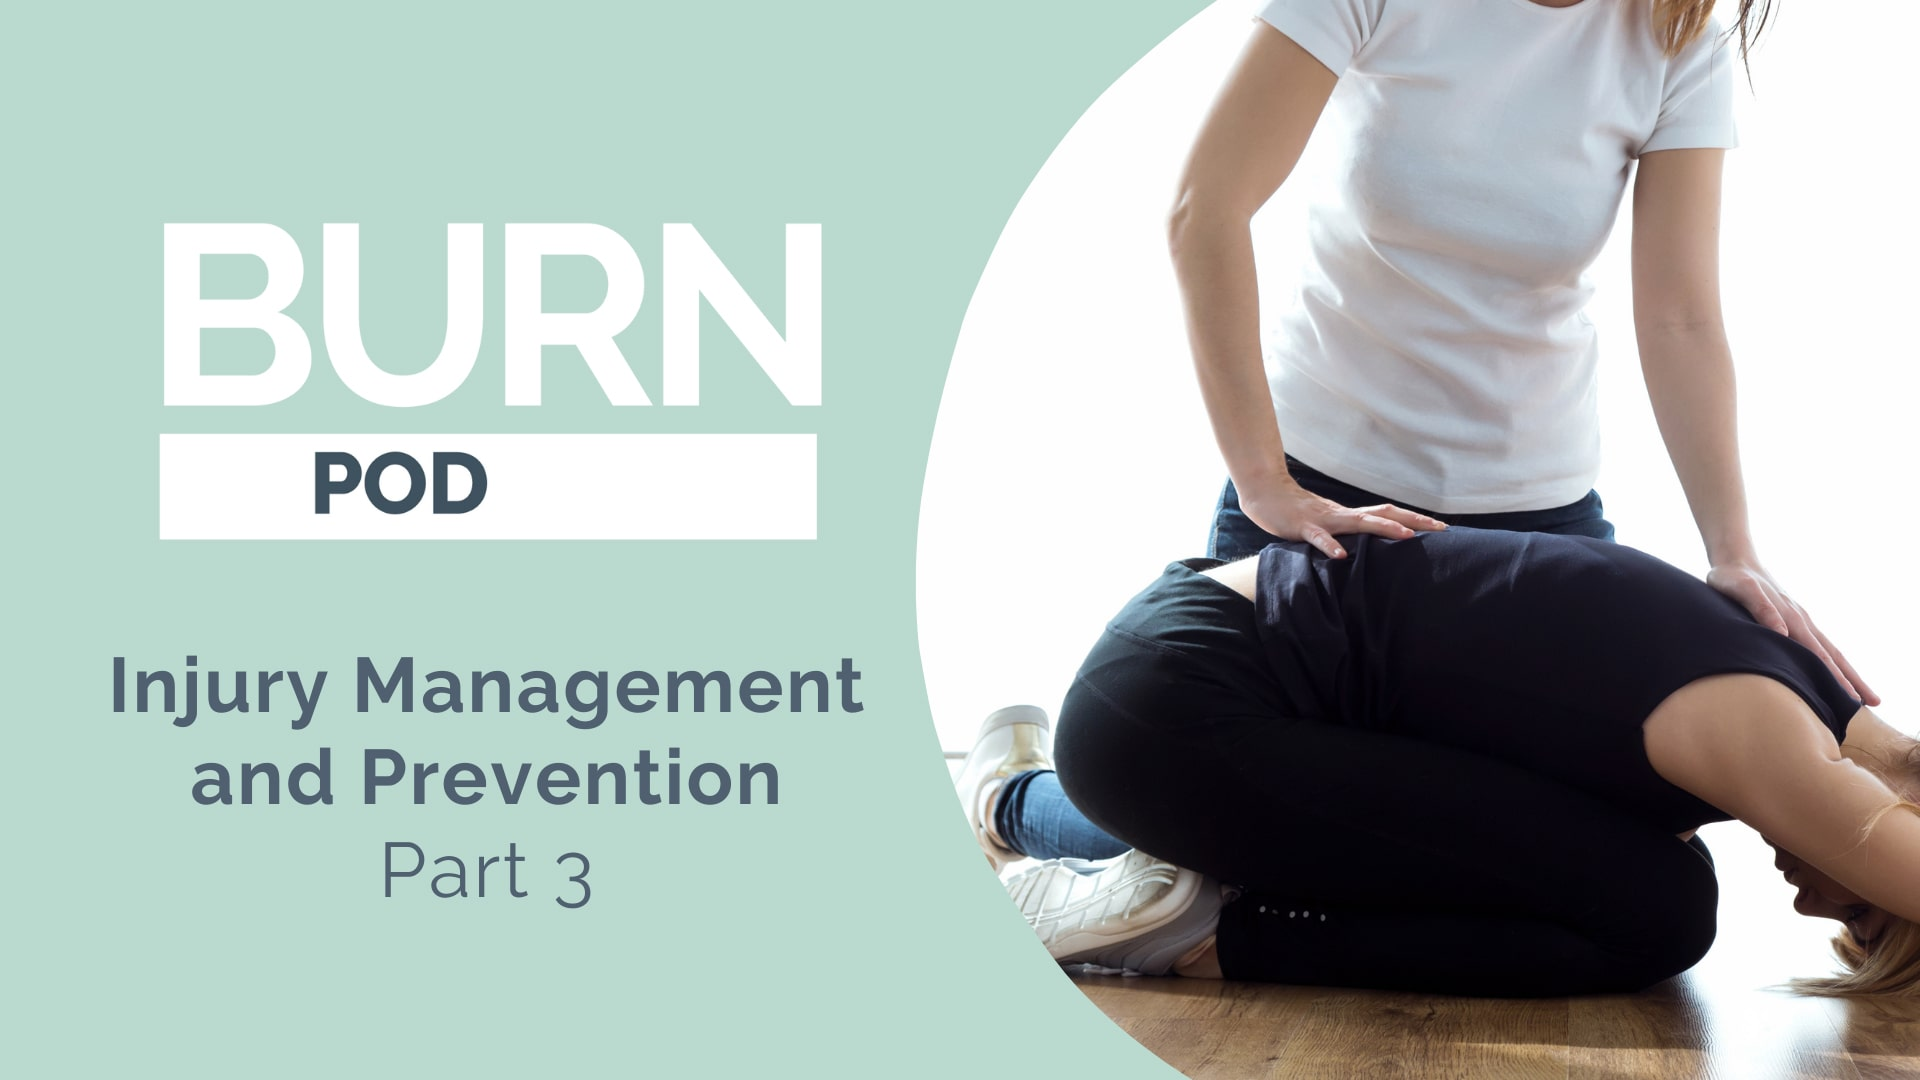 Injury Management and Prevention Part 3